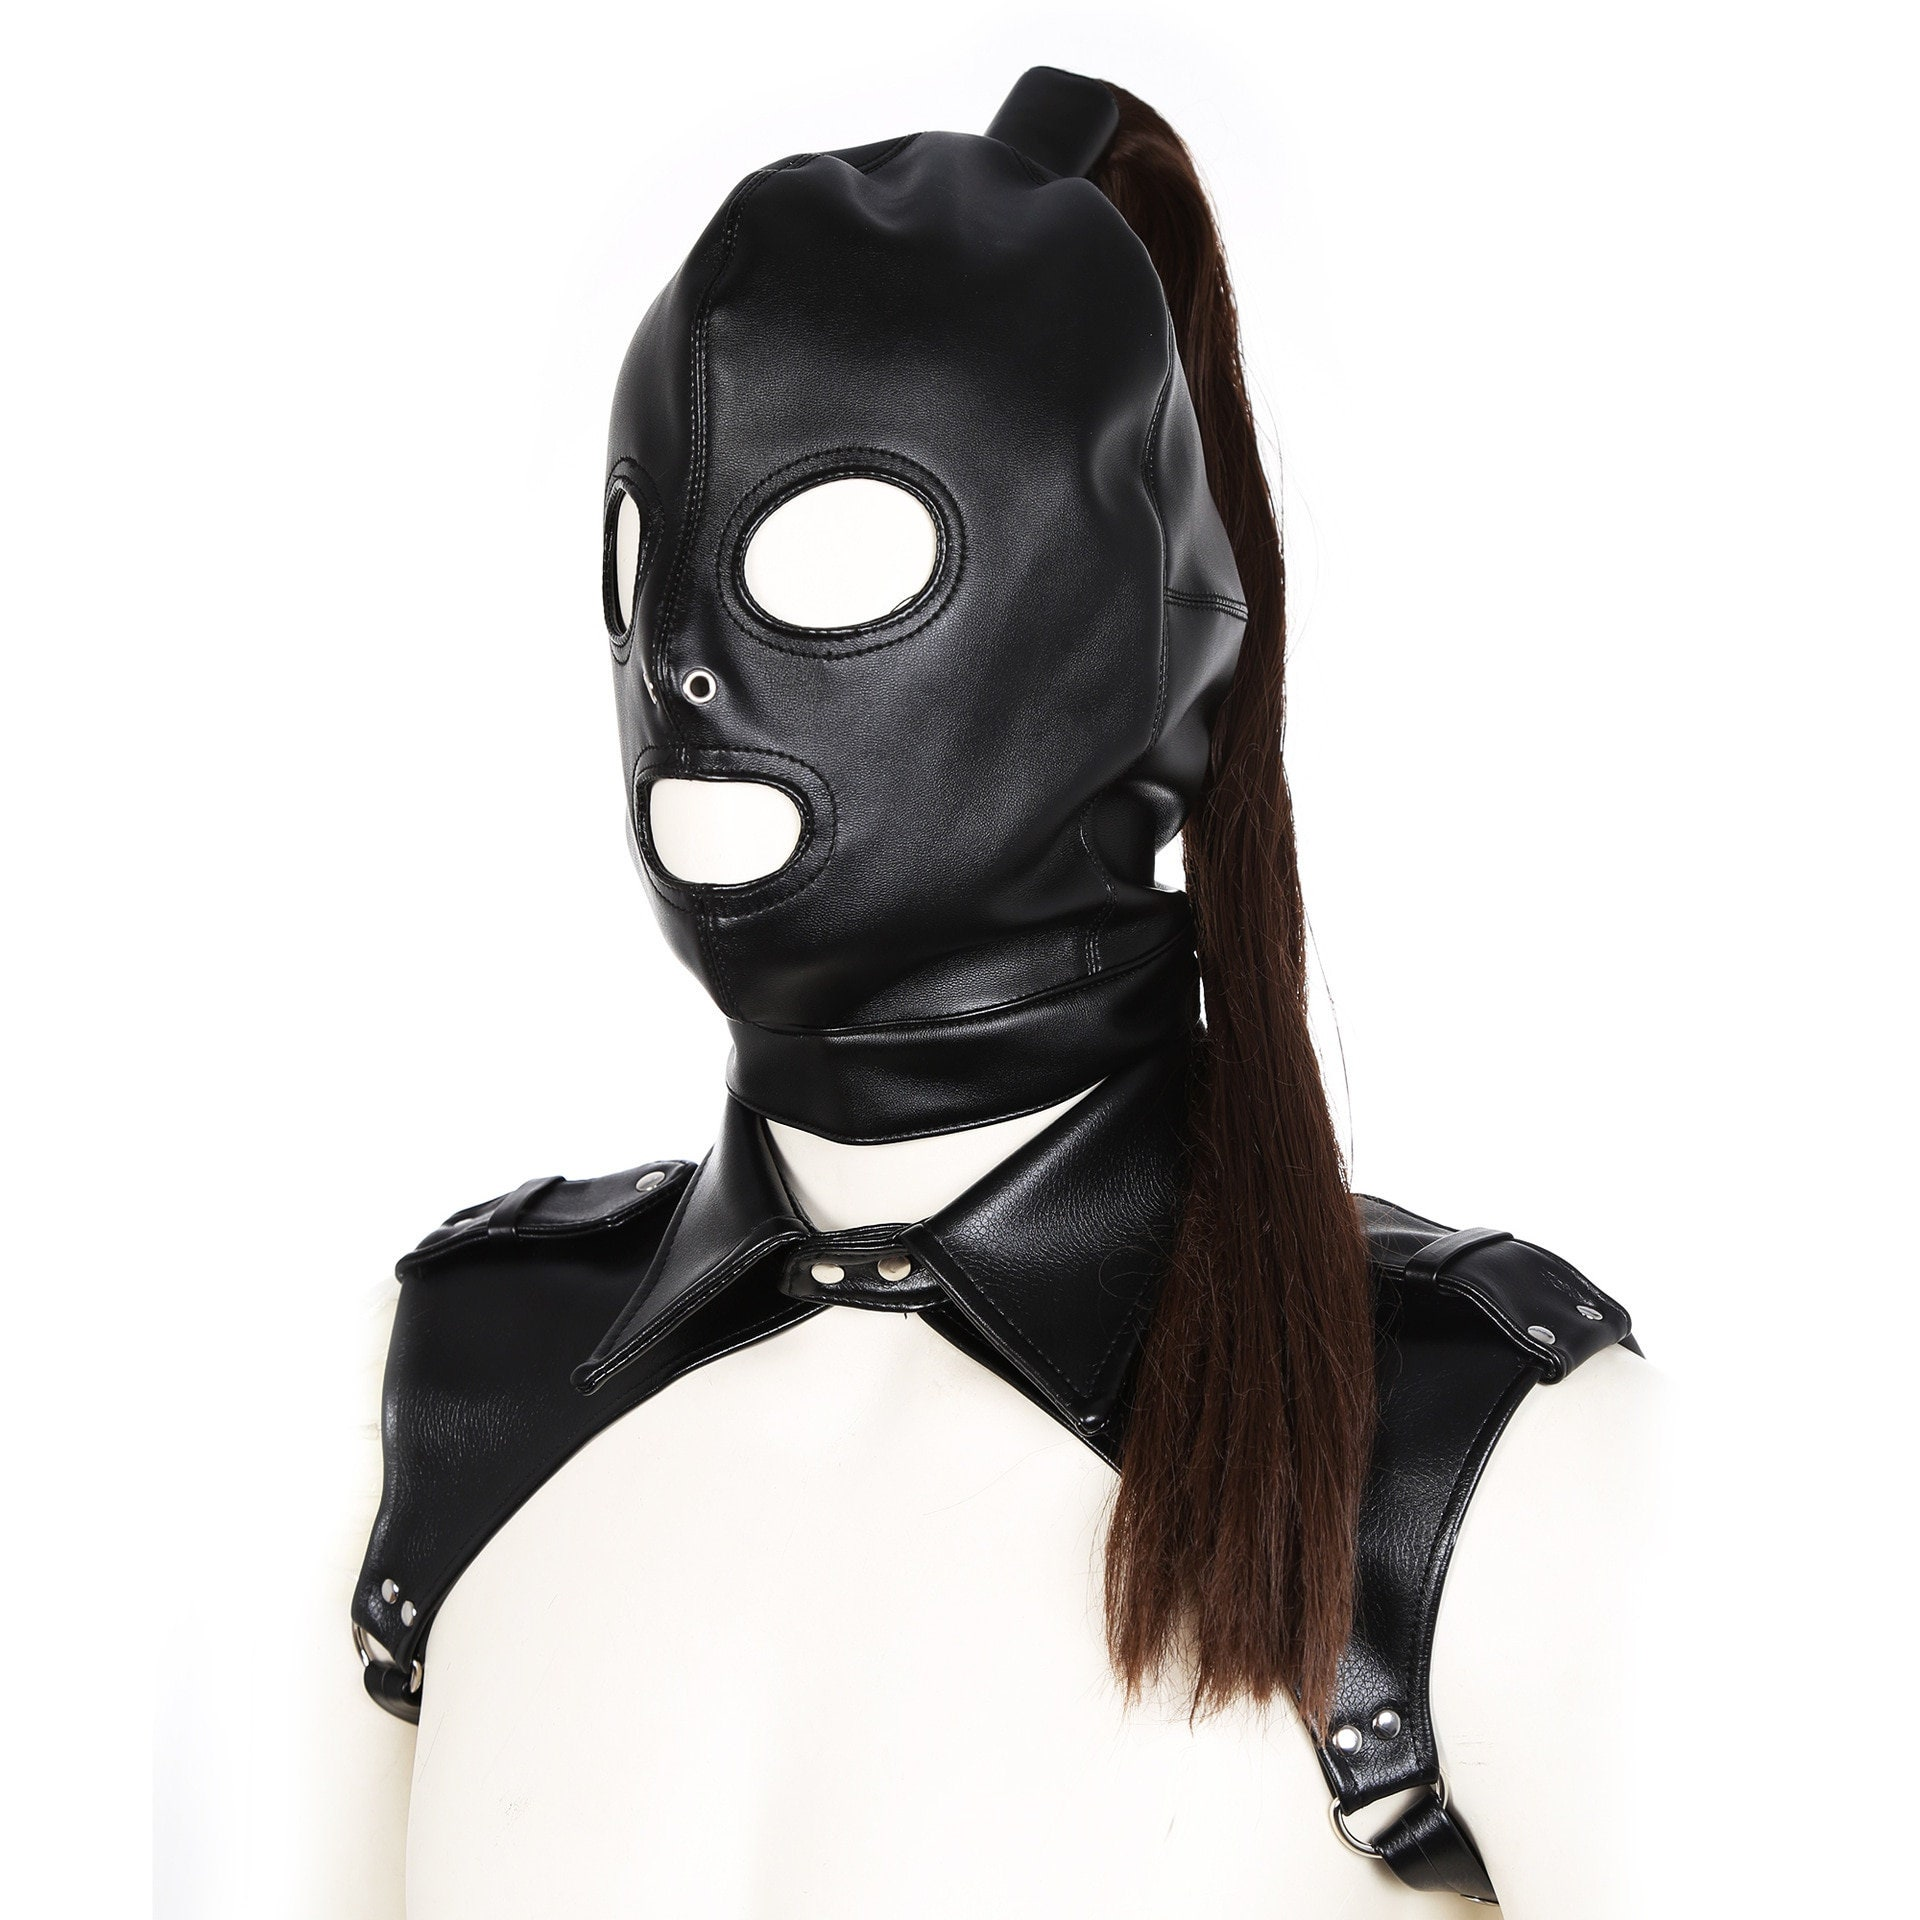 Exotic Leather Tank harness And Open Mouth Bondage Hood Mask with Braid Tail